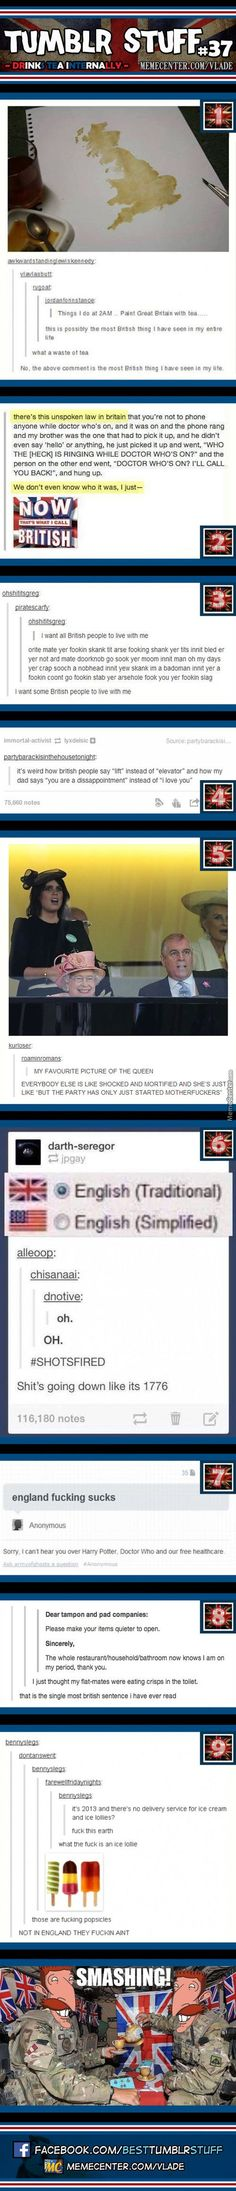 Oh the British!